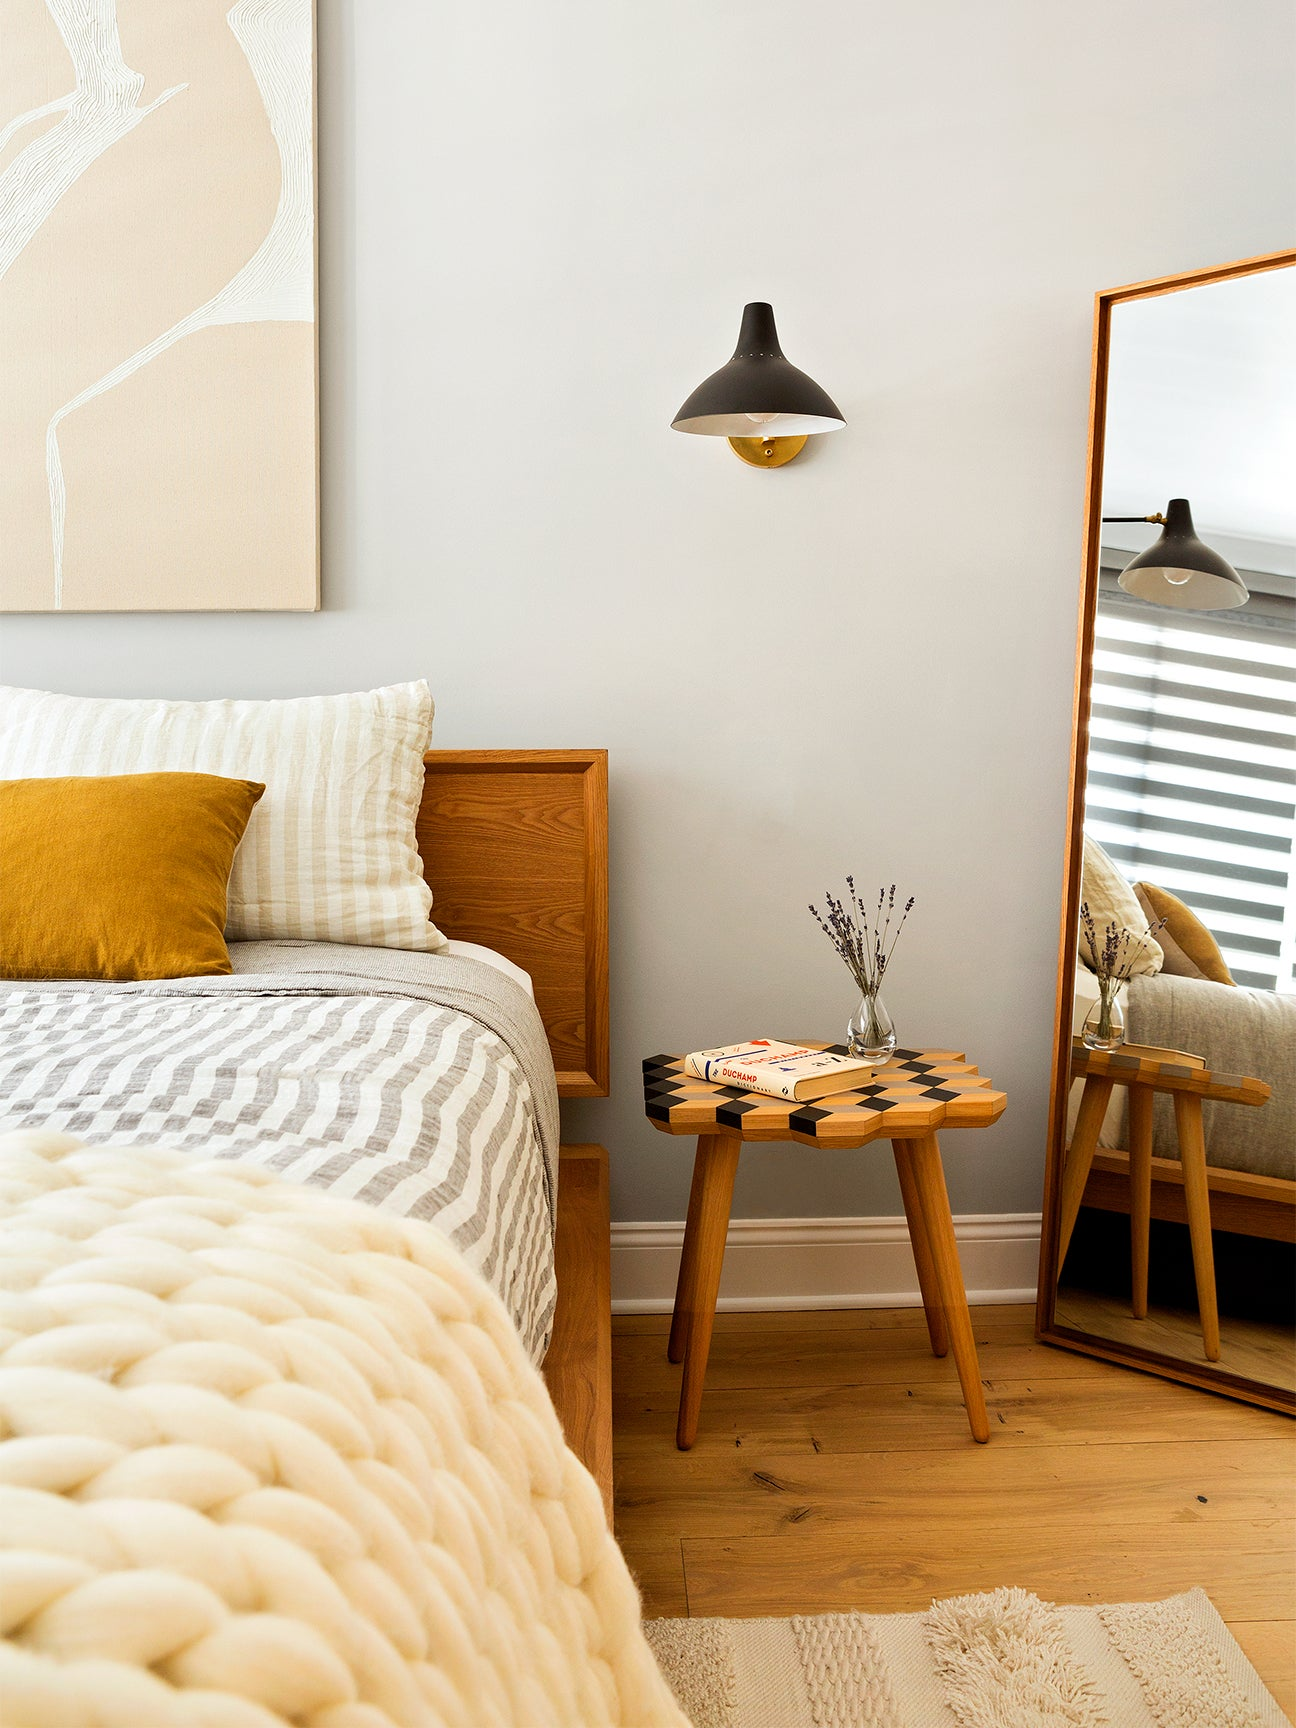 Bed with neutral bedding